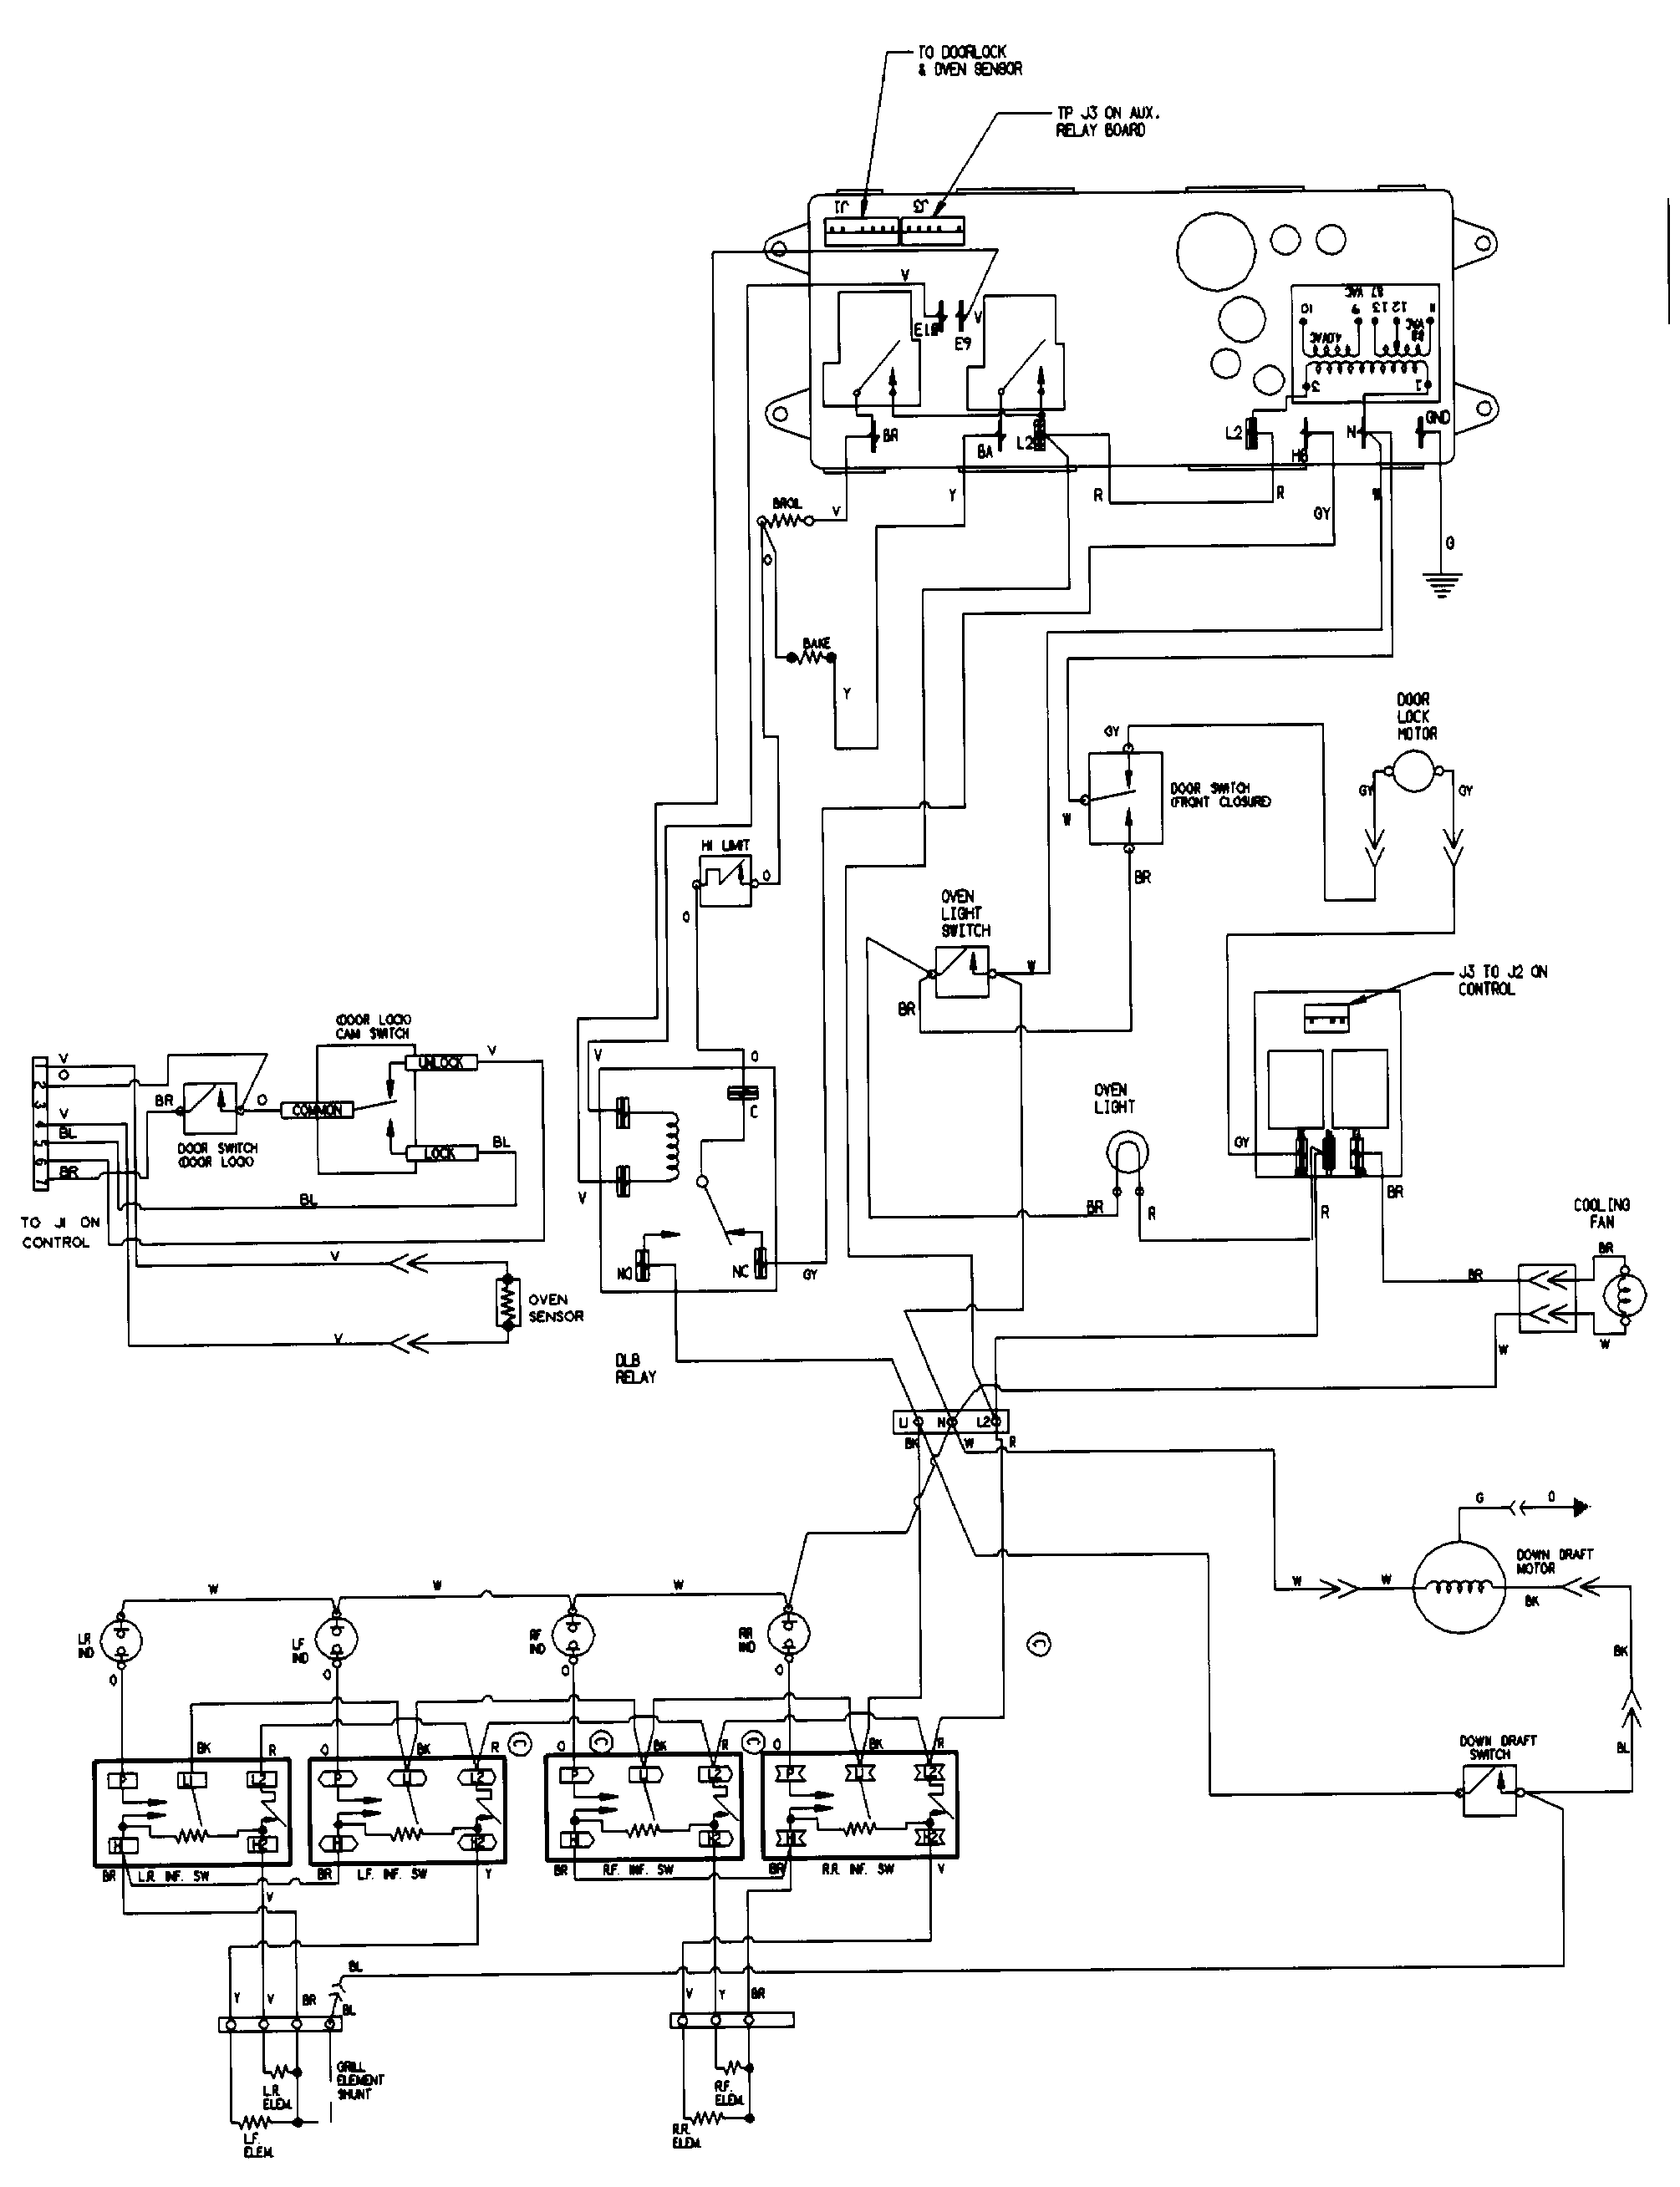 Electric Stove Wiring Diagram Whirlpool Electric Range Model Number on whirlpool cooktop rf302bxgw, hopper installation diagrams, whirlpool defrost timer wiring diagram, electric cooktop wiring diagrams, whirlpool dishwasher diagram, whirlpool oven wiring diagram, whirlpool estate refrigerator wiring schematic, whirlpool cooktop installation, whirlpool cooktop accessories,